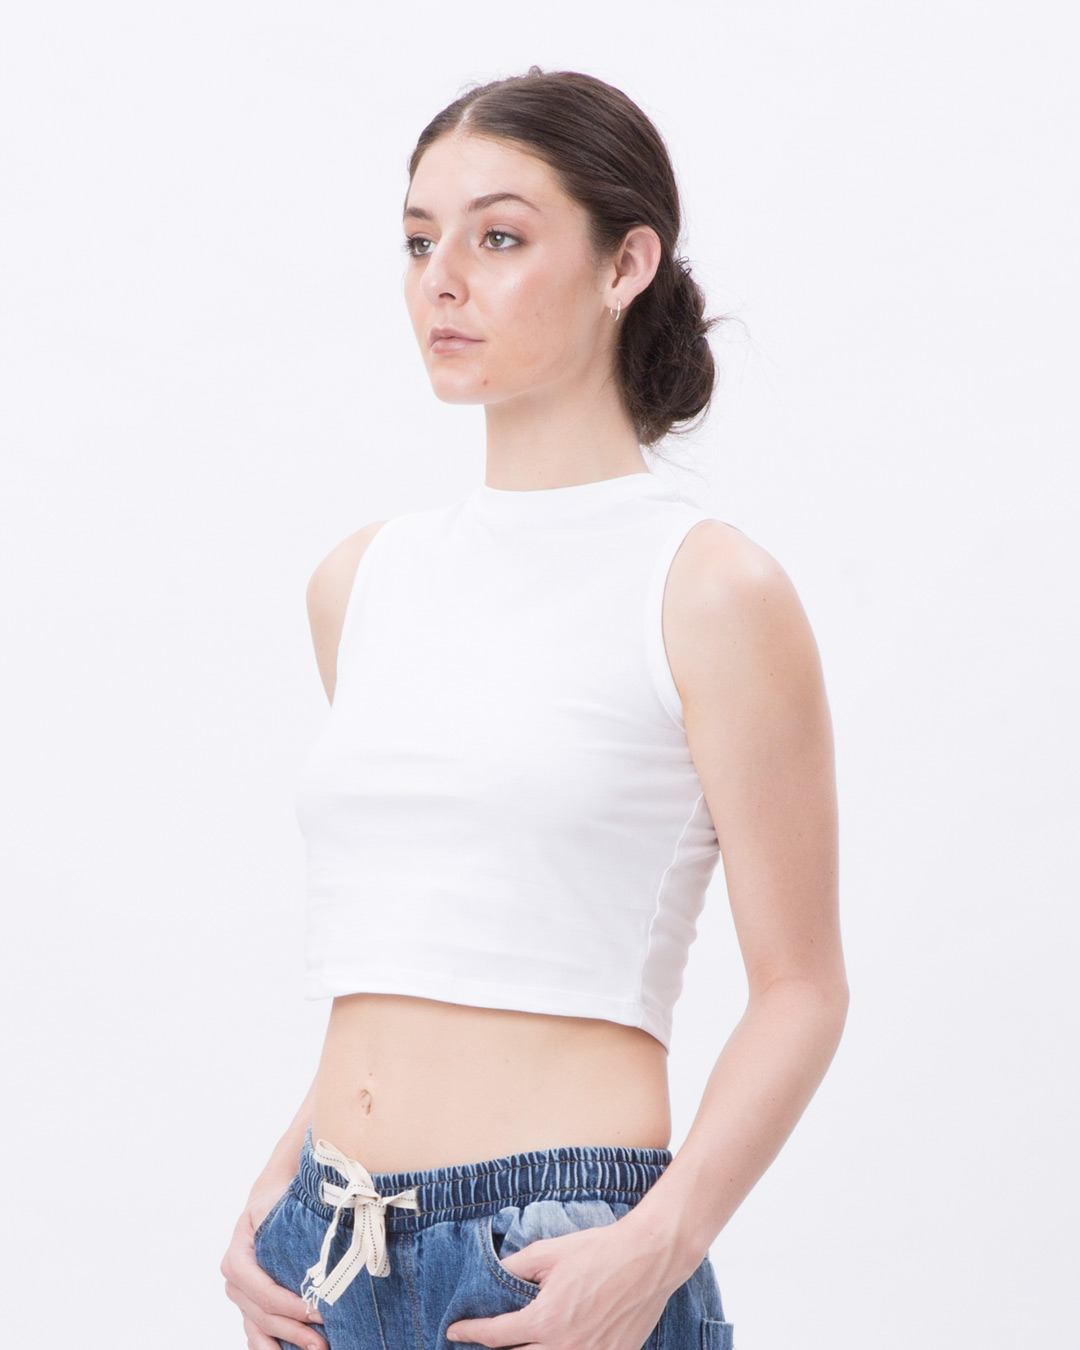 c64f4547bee White Cropped Tank - Plain Womens Cropped Tank Tops@Best Price India ...